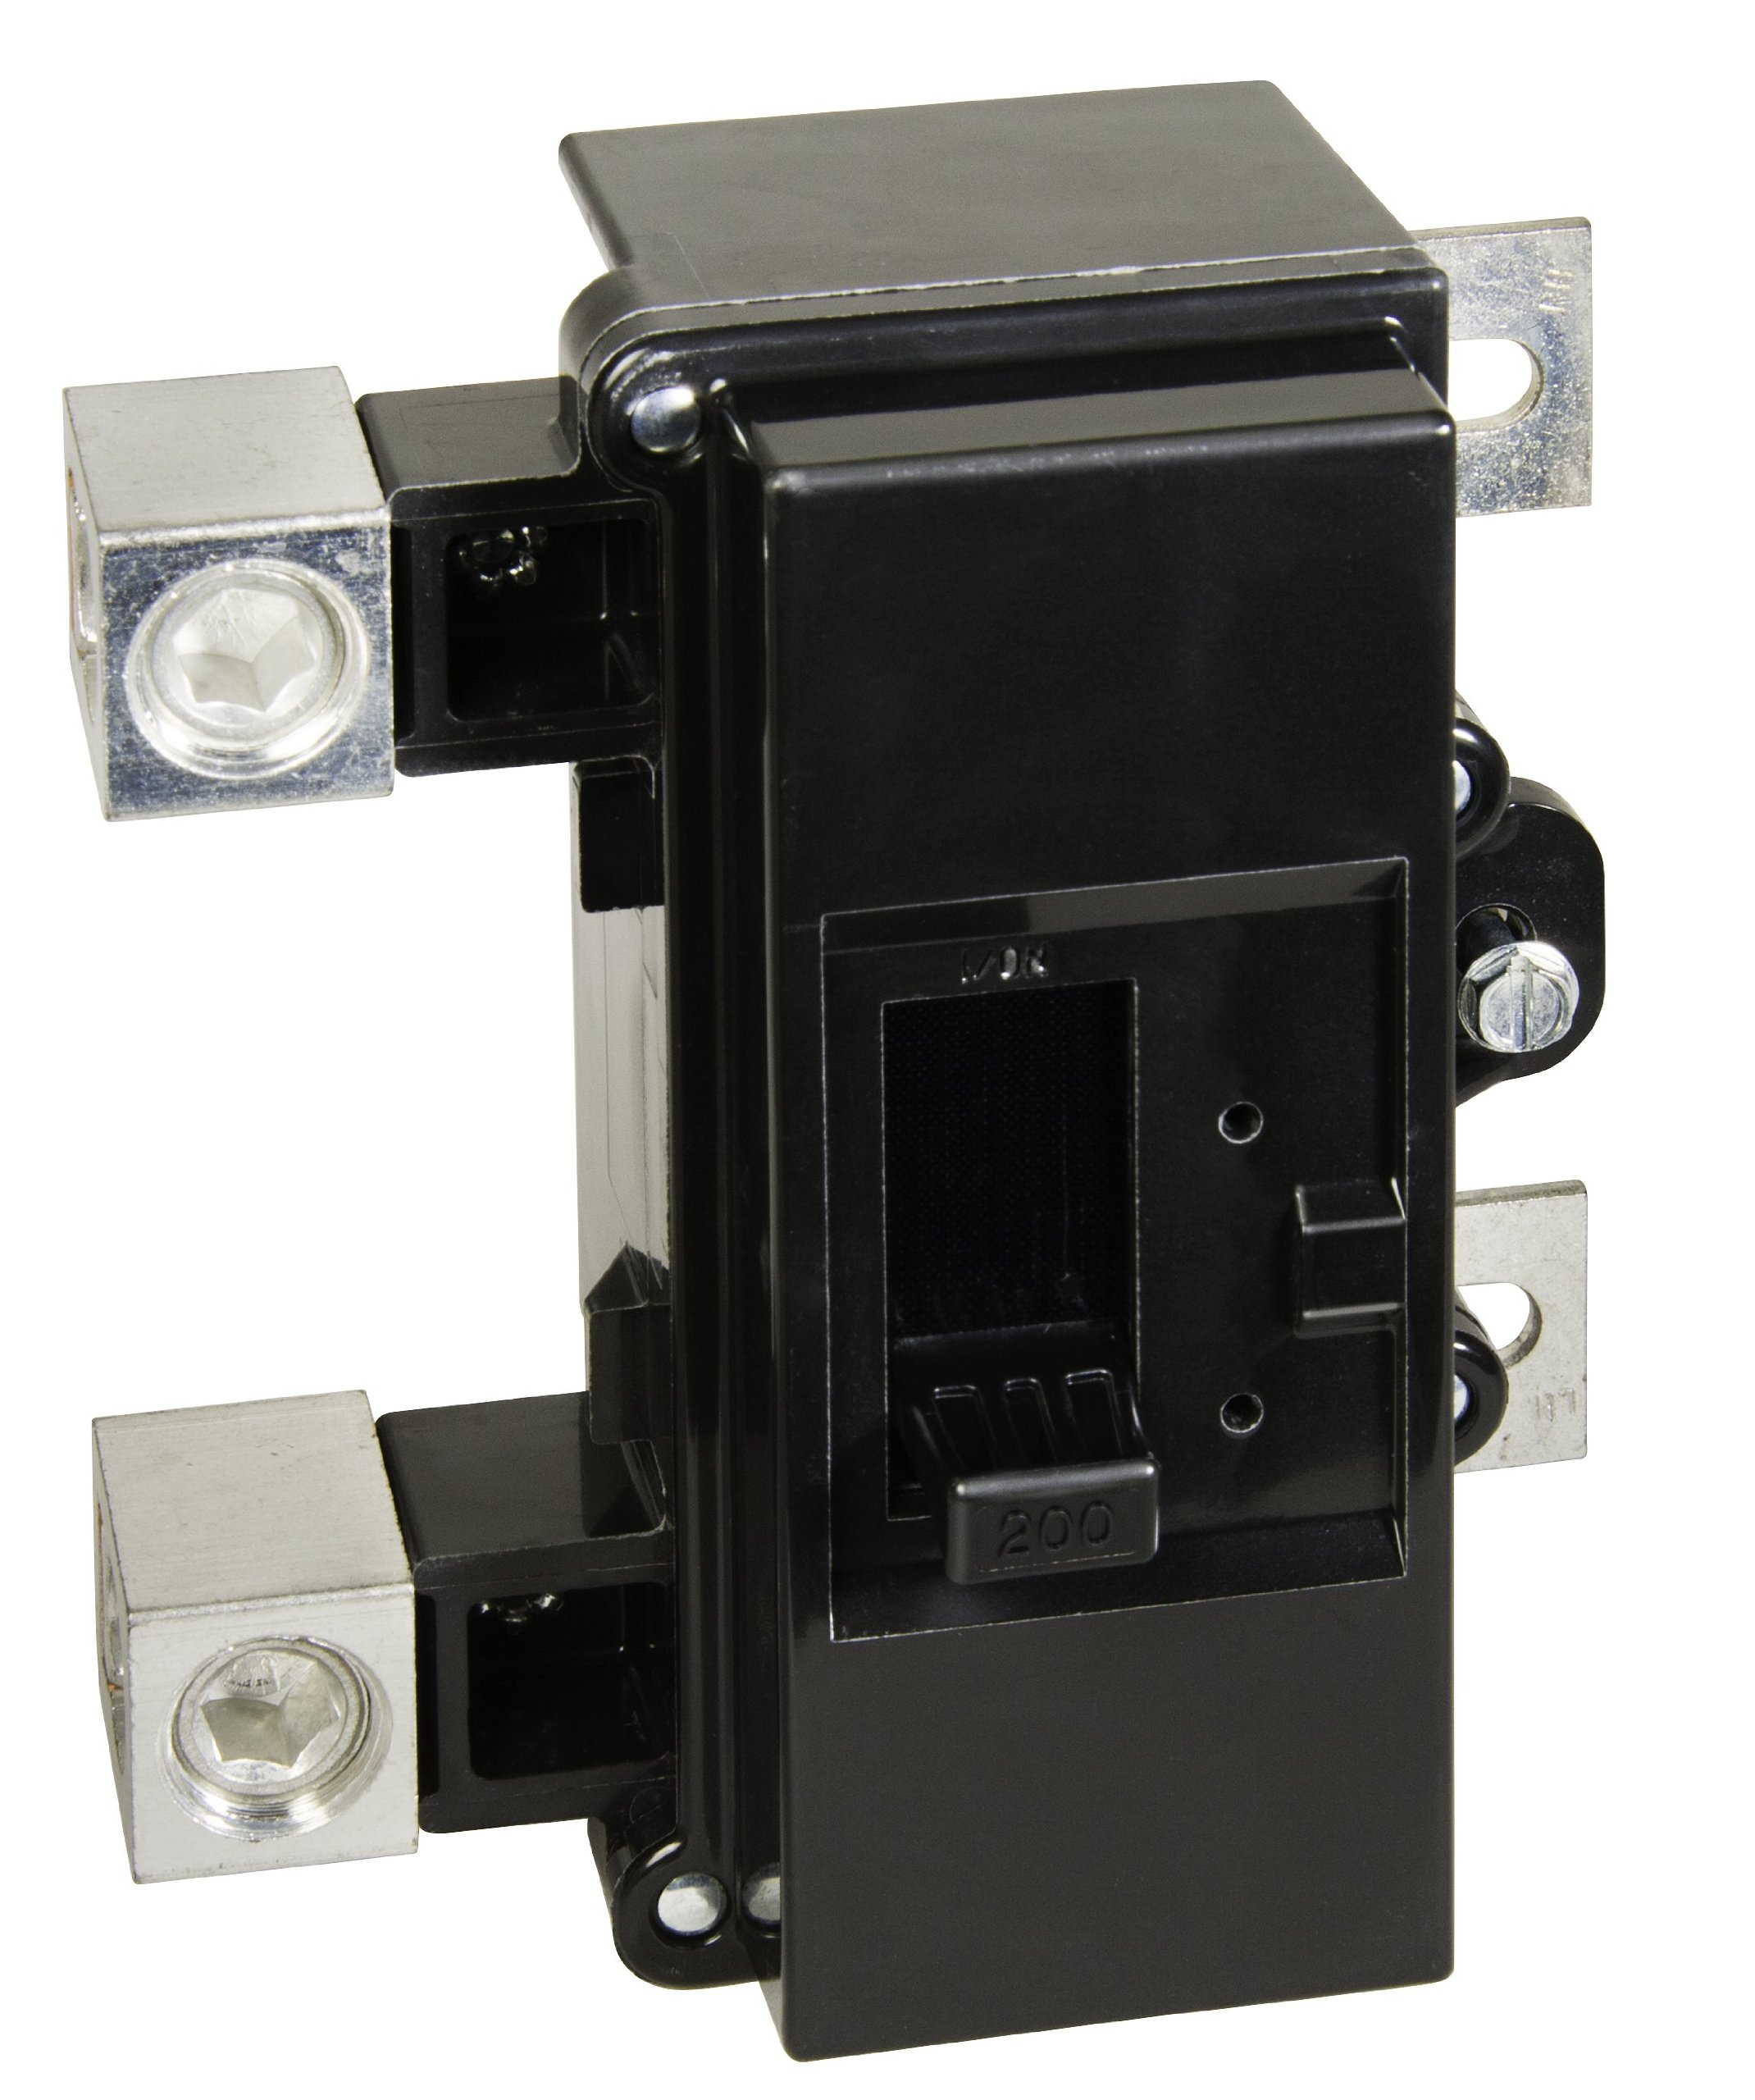 Square D by Schneider Electric QOM2200VH QO 200-Amp 22k AIR QOM2 Frame Size Main Circuit Breaker for QO and Homeline Load Centers by Square D by Schneider Electric